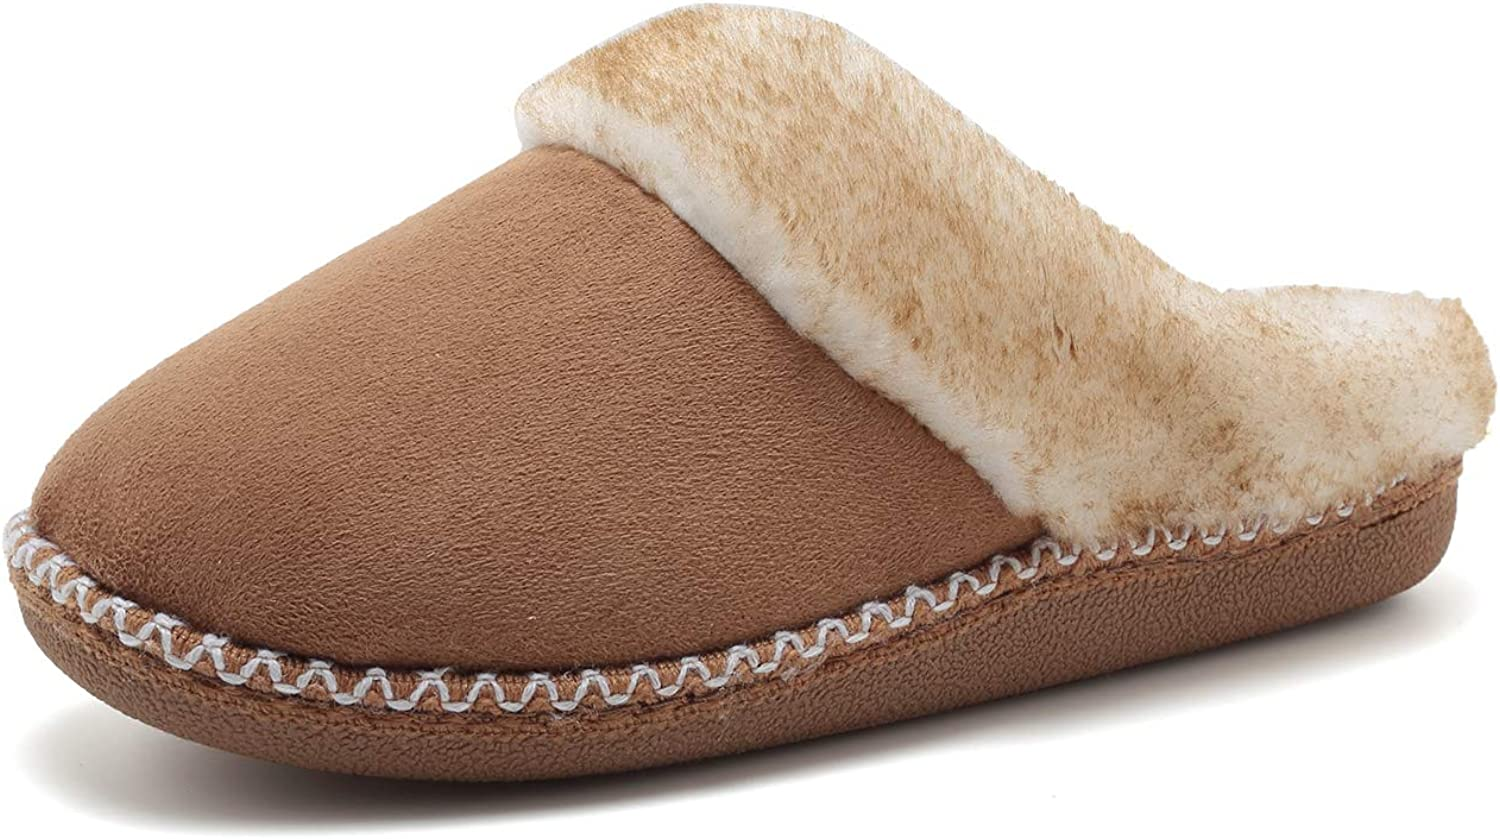 FANTURE Women's House Slippers Micro Suede Faux Fur Lined Indoor & Outdoor Slip On House shoes-U418WMT016-tan-40.41